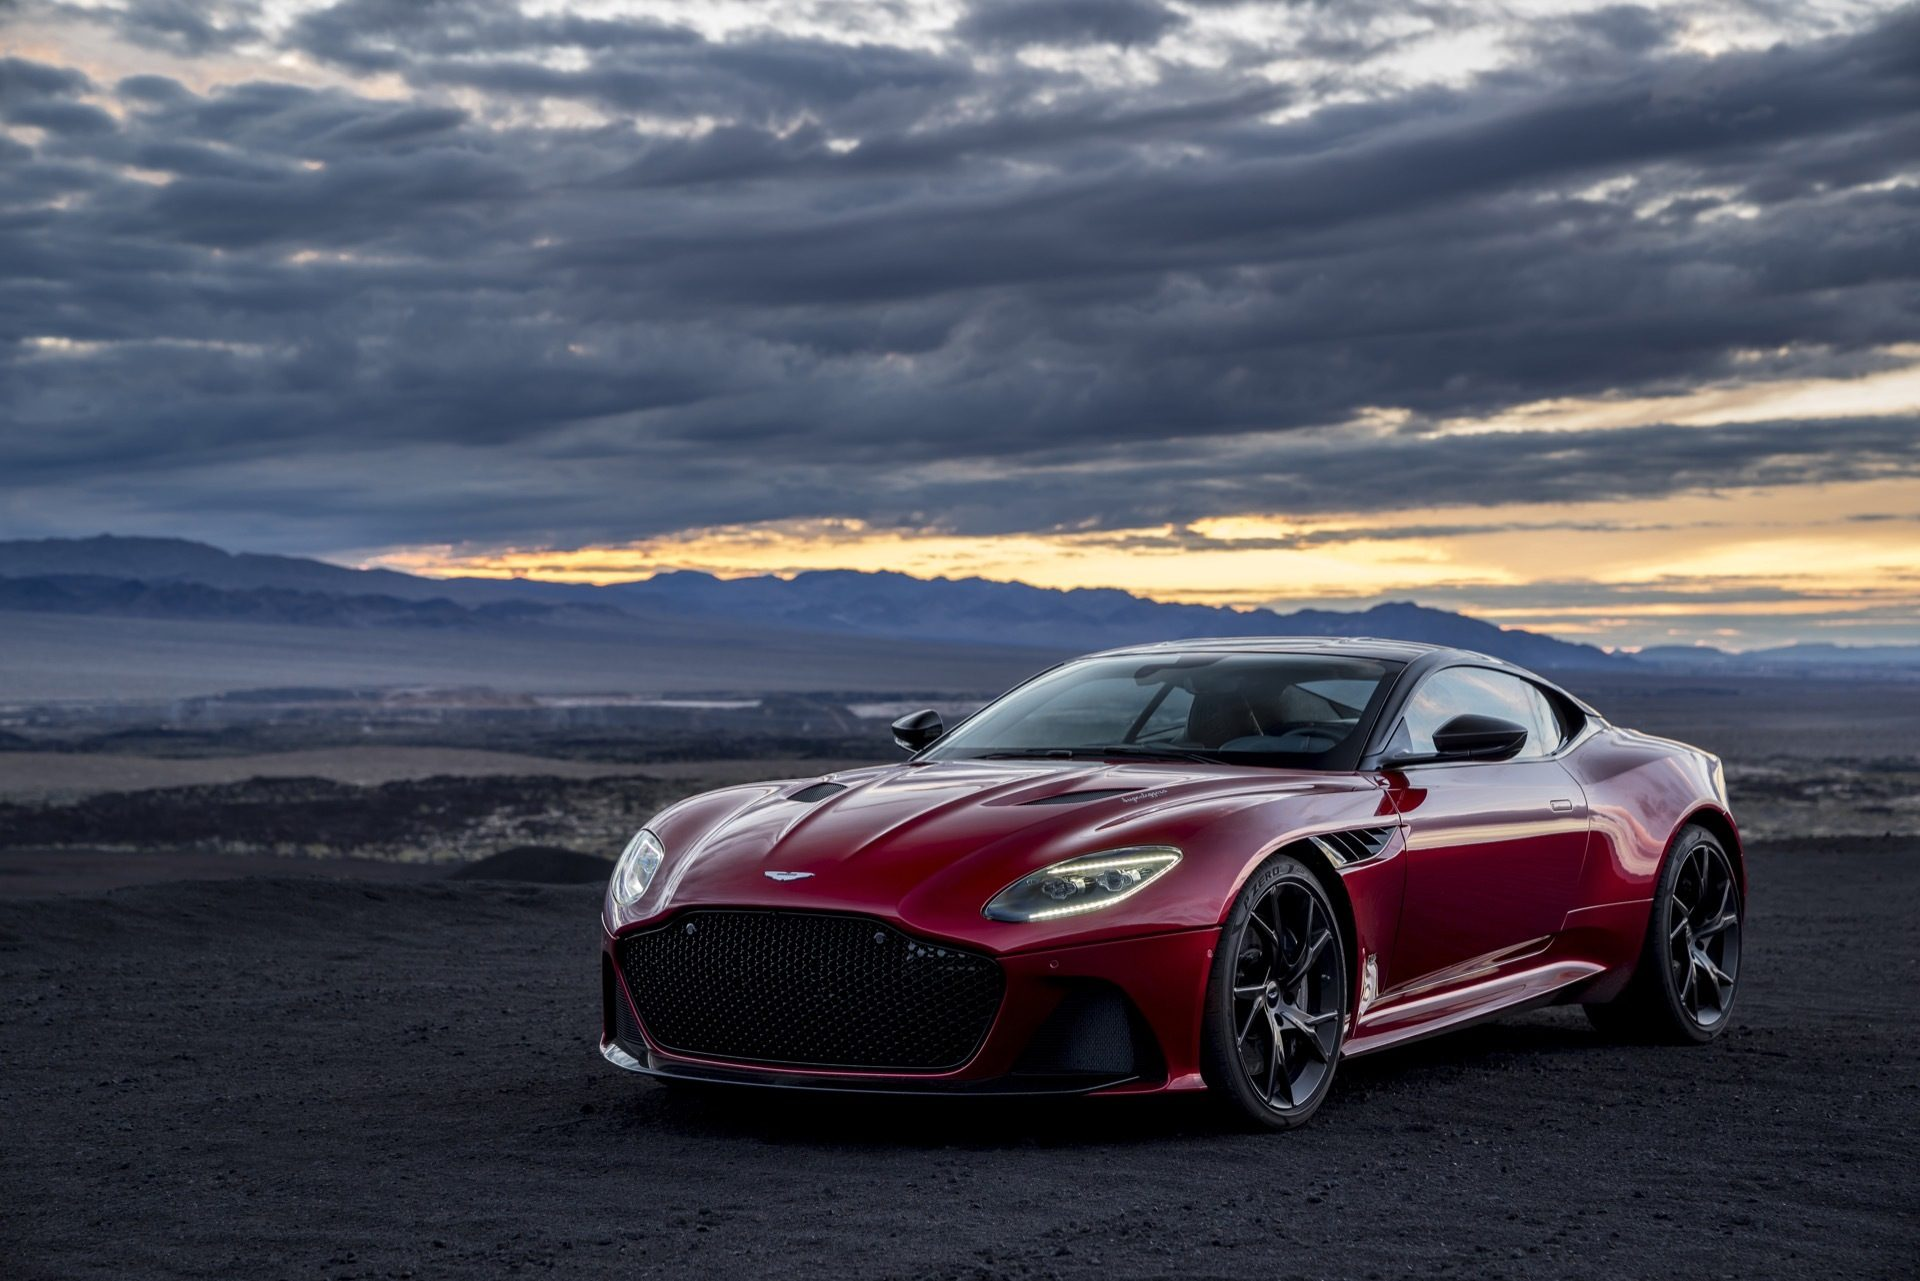 aston martin pulls the wraps off the all-new dbs superleggera